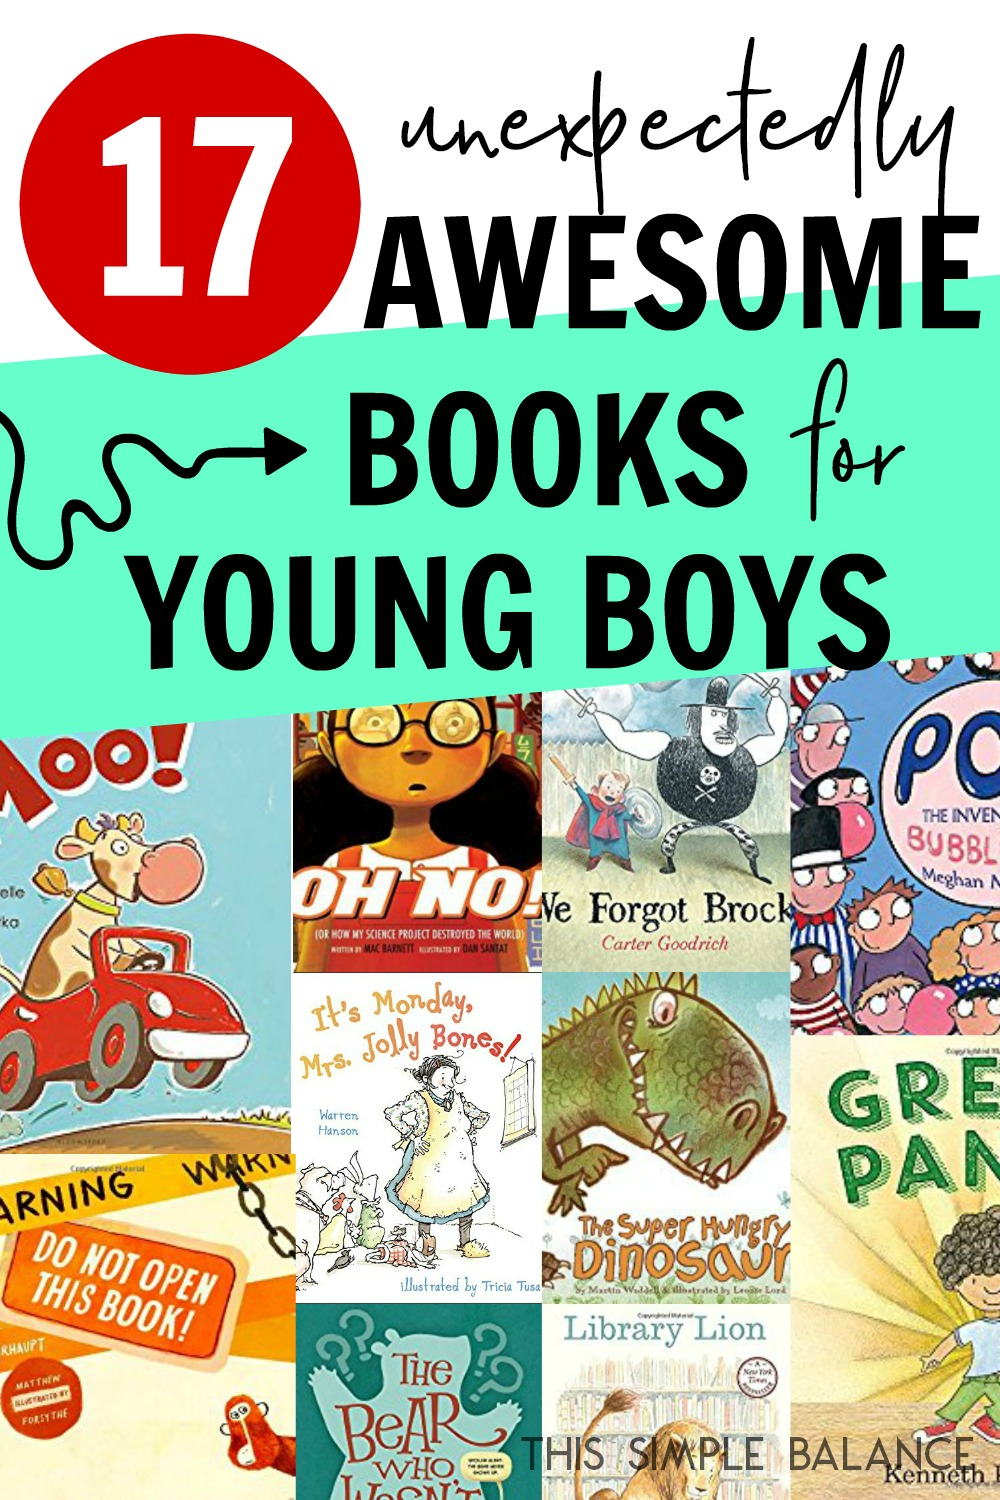 Looking for books your young boys will love? These are all favorites of my boys (ages 4-8)!